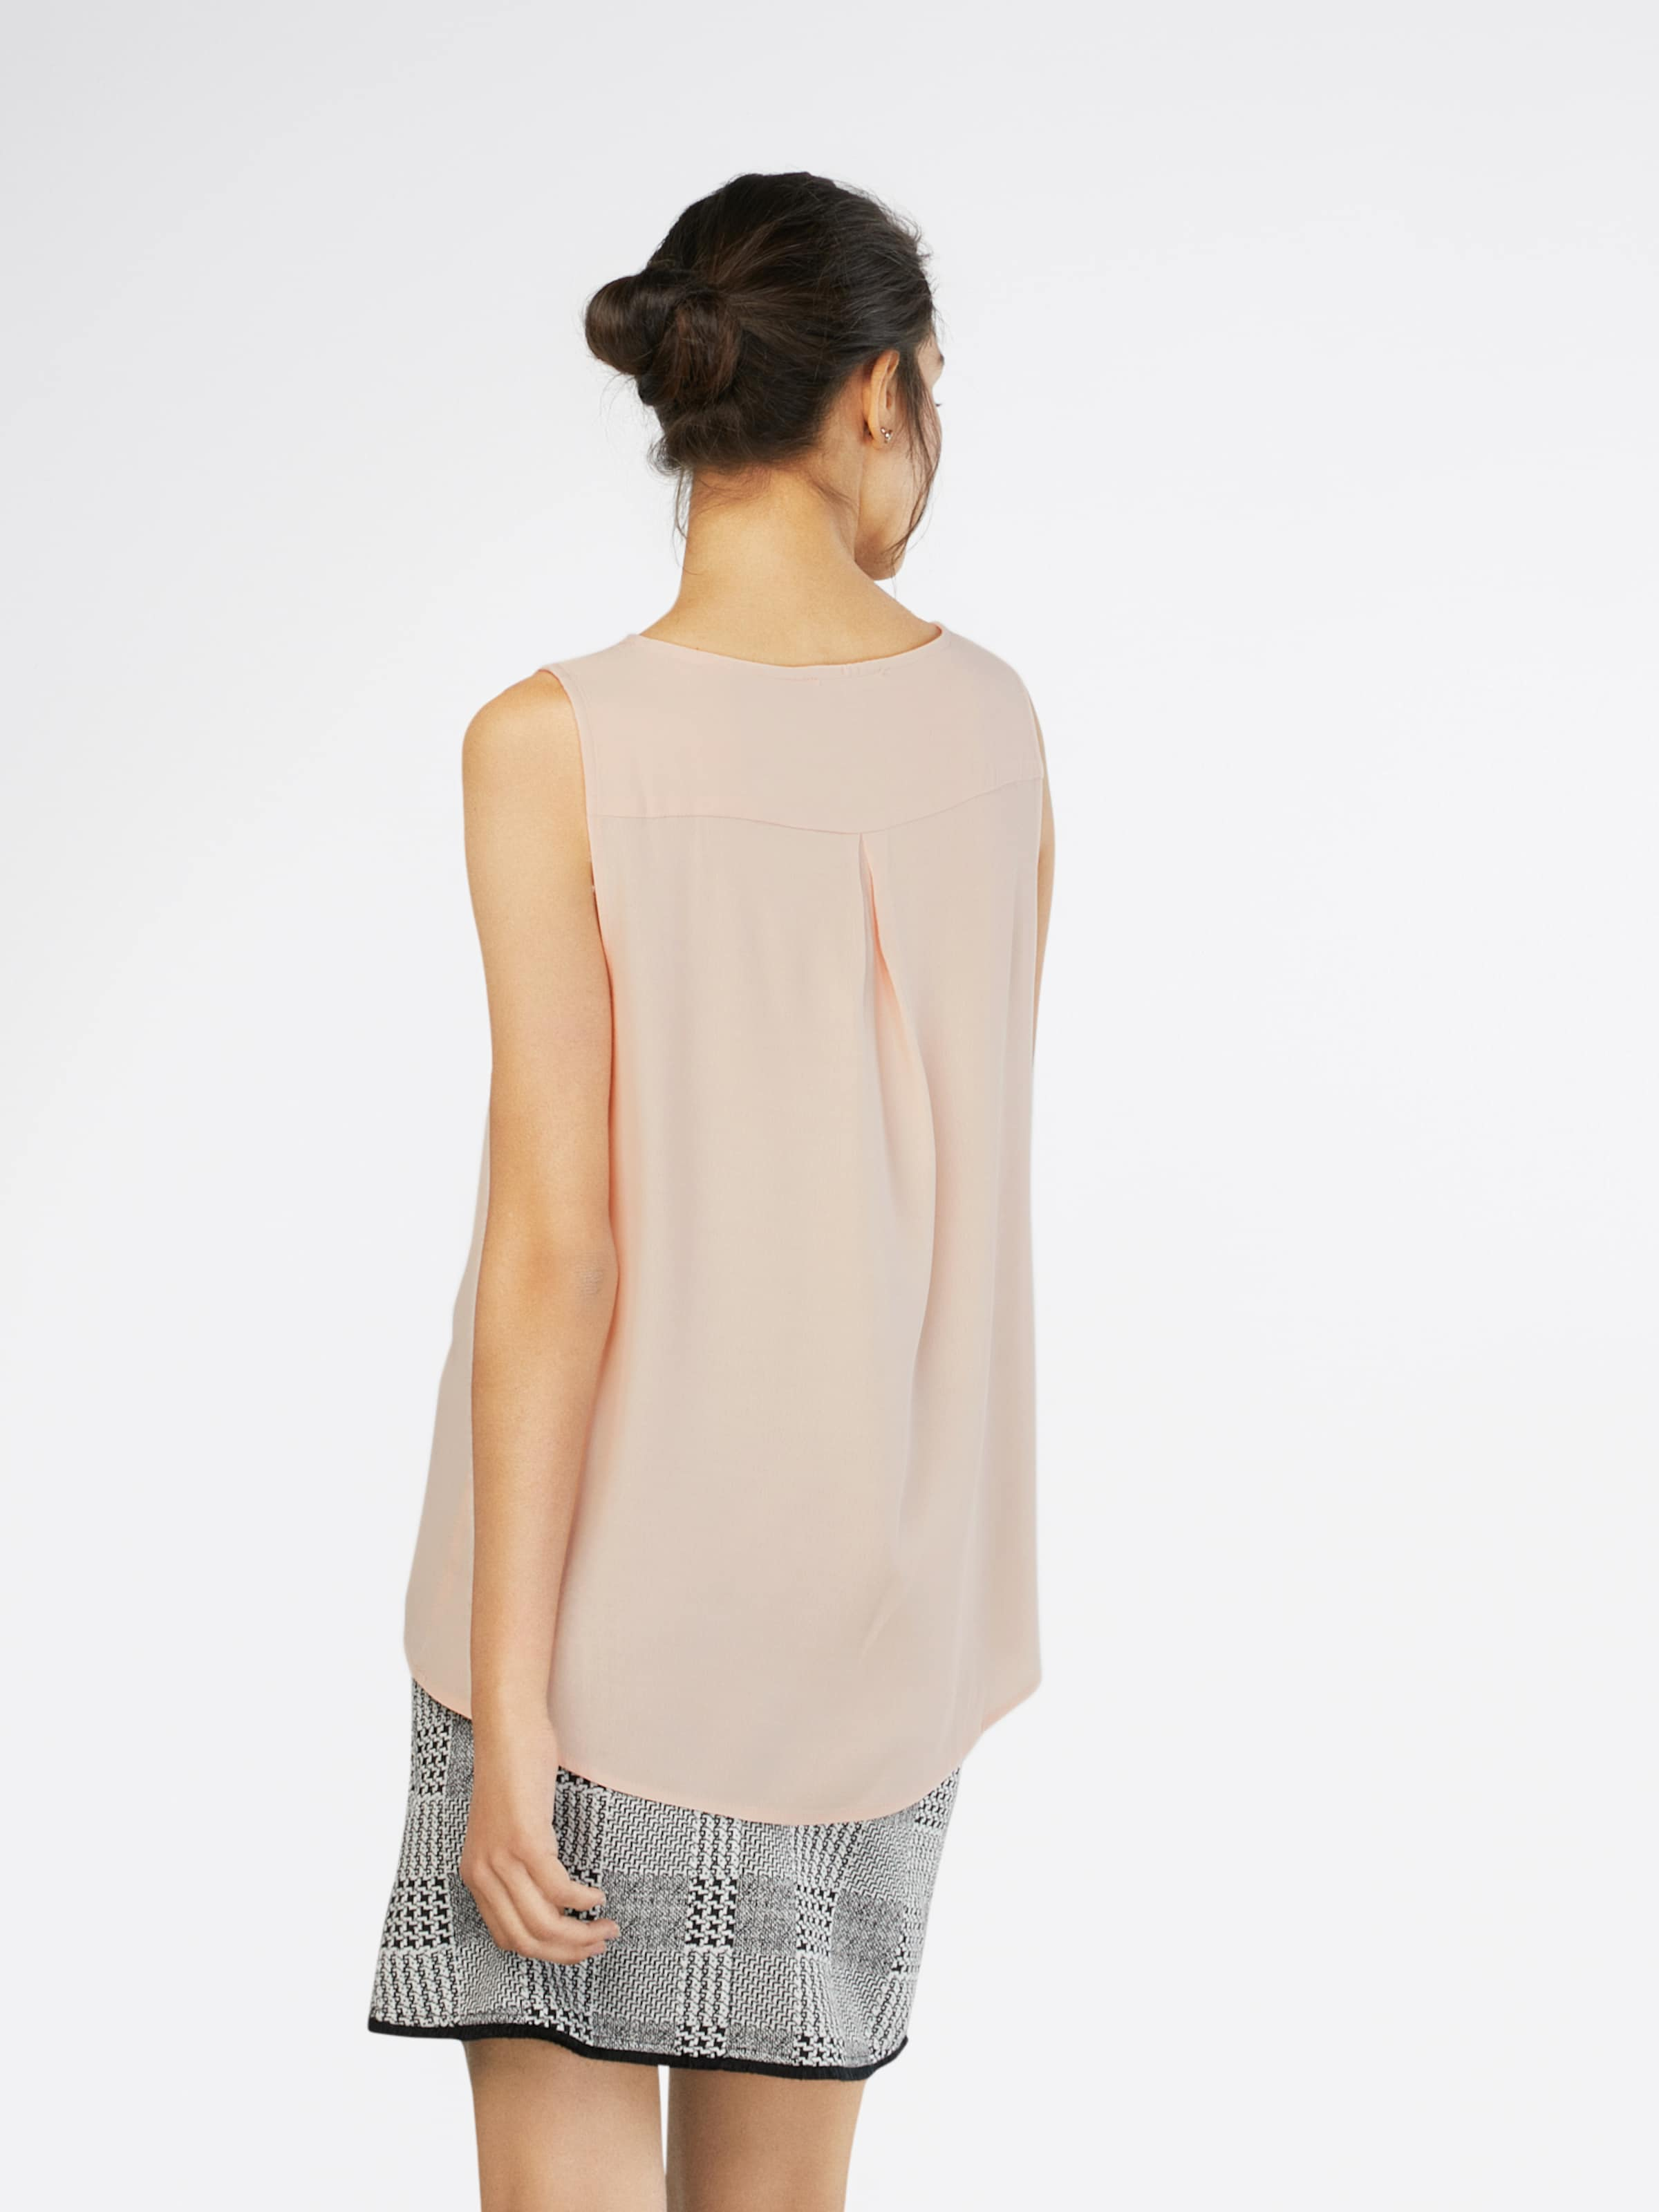 En amp;berry Pintuck Blouse Tunique 'sleeveless Shoulders' Mint With Rose Y6y7gvbf